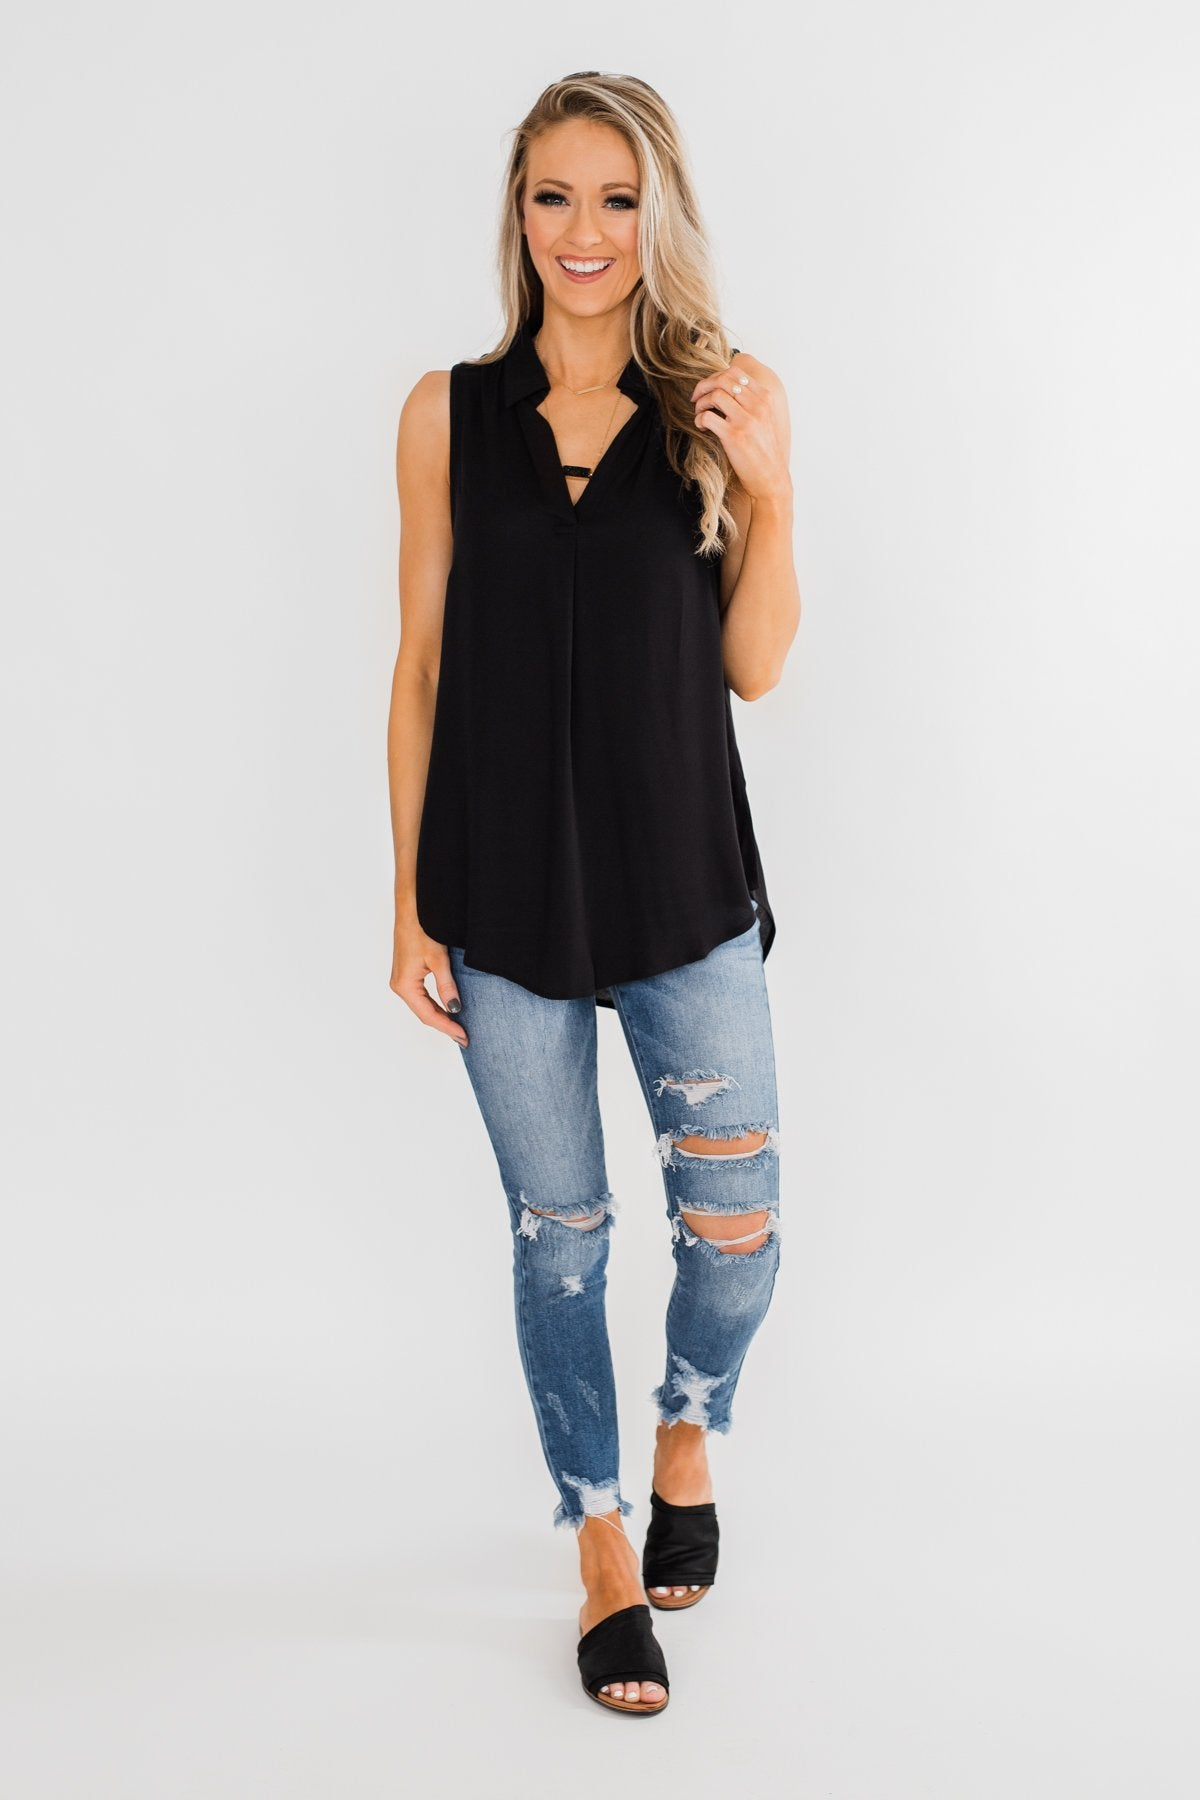 Taking Chances Collar Tank Top- Black